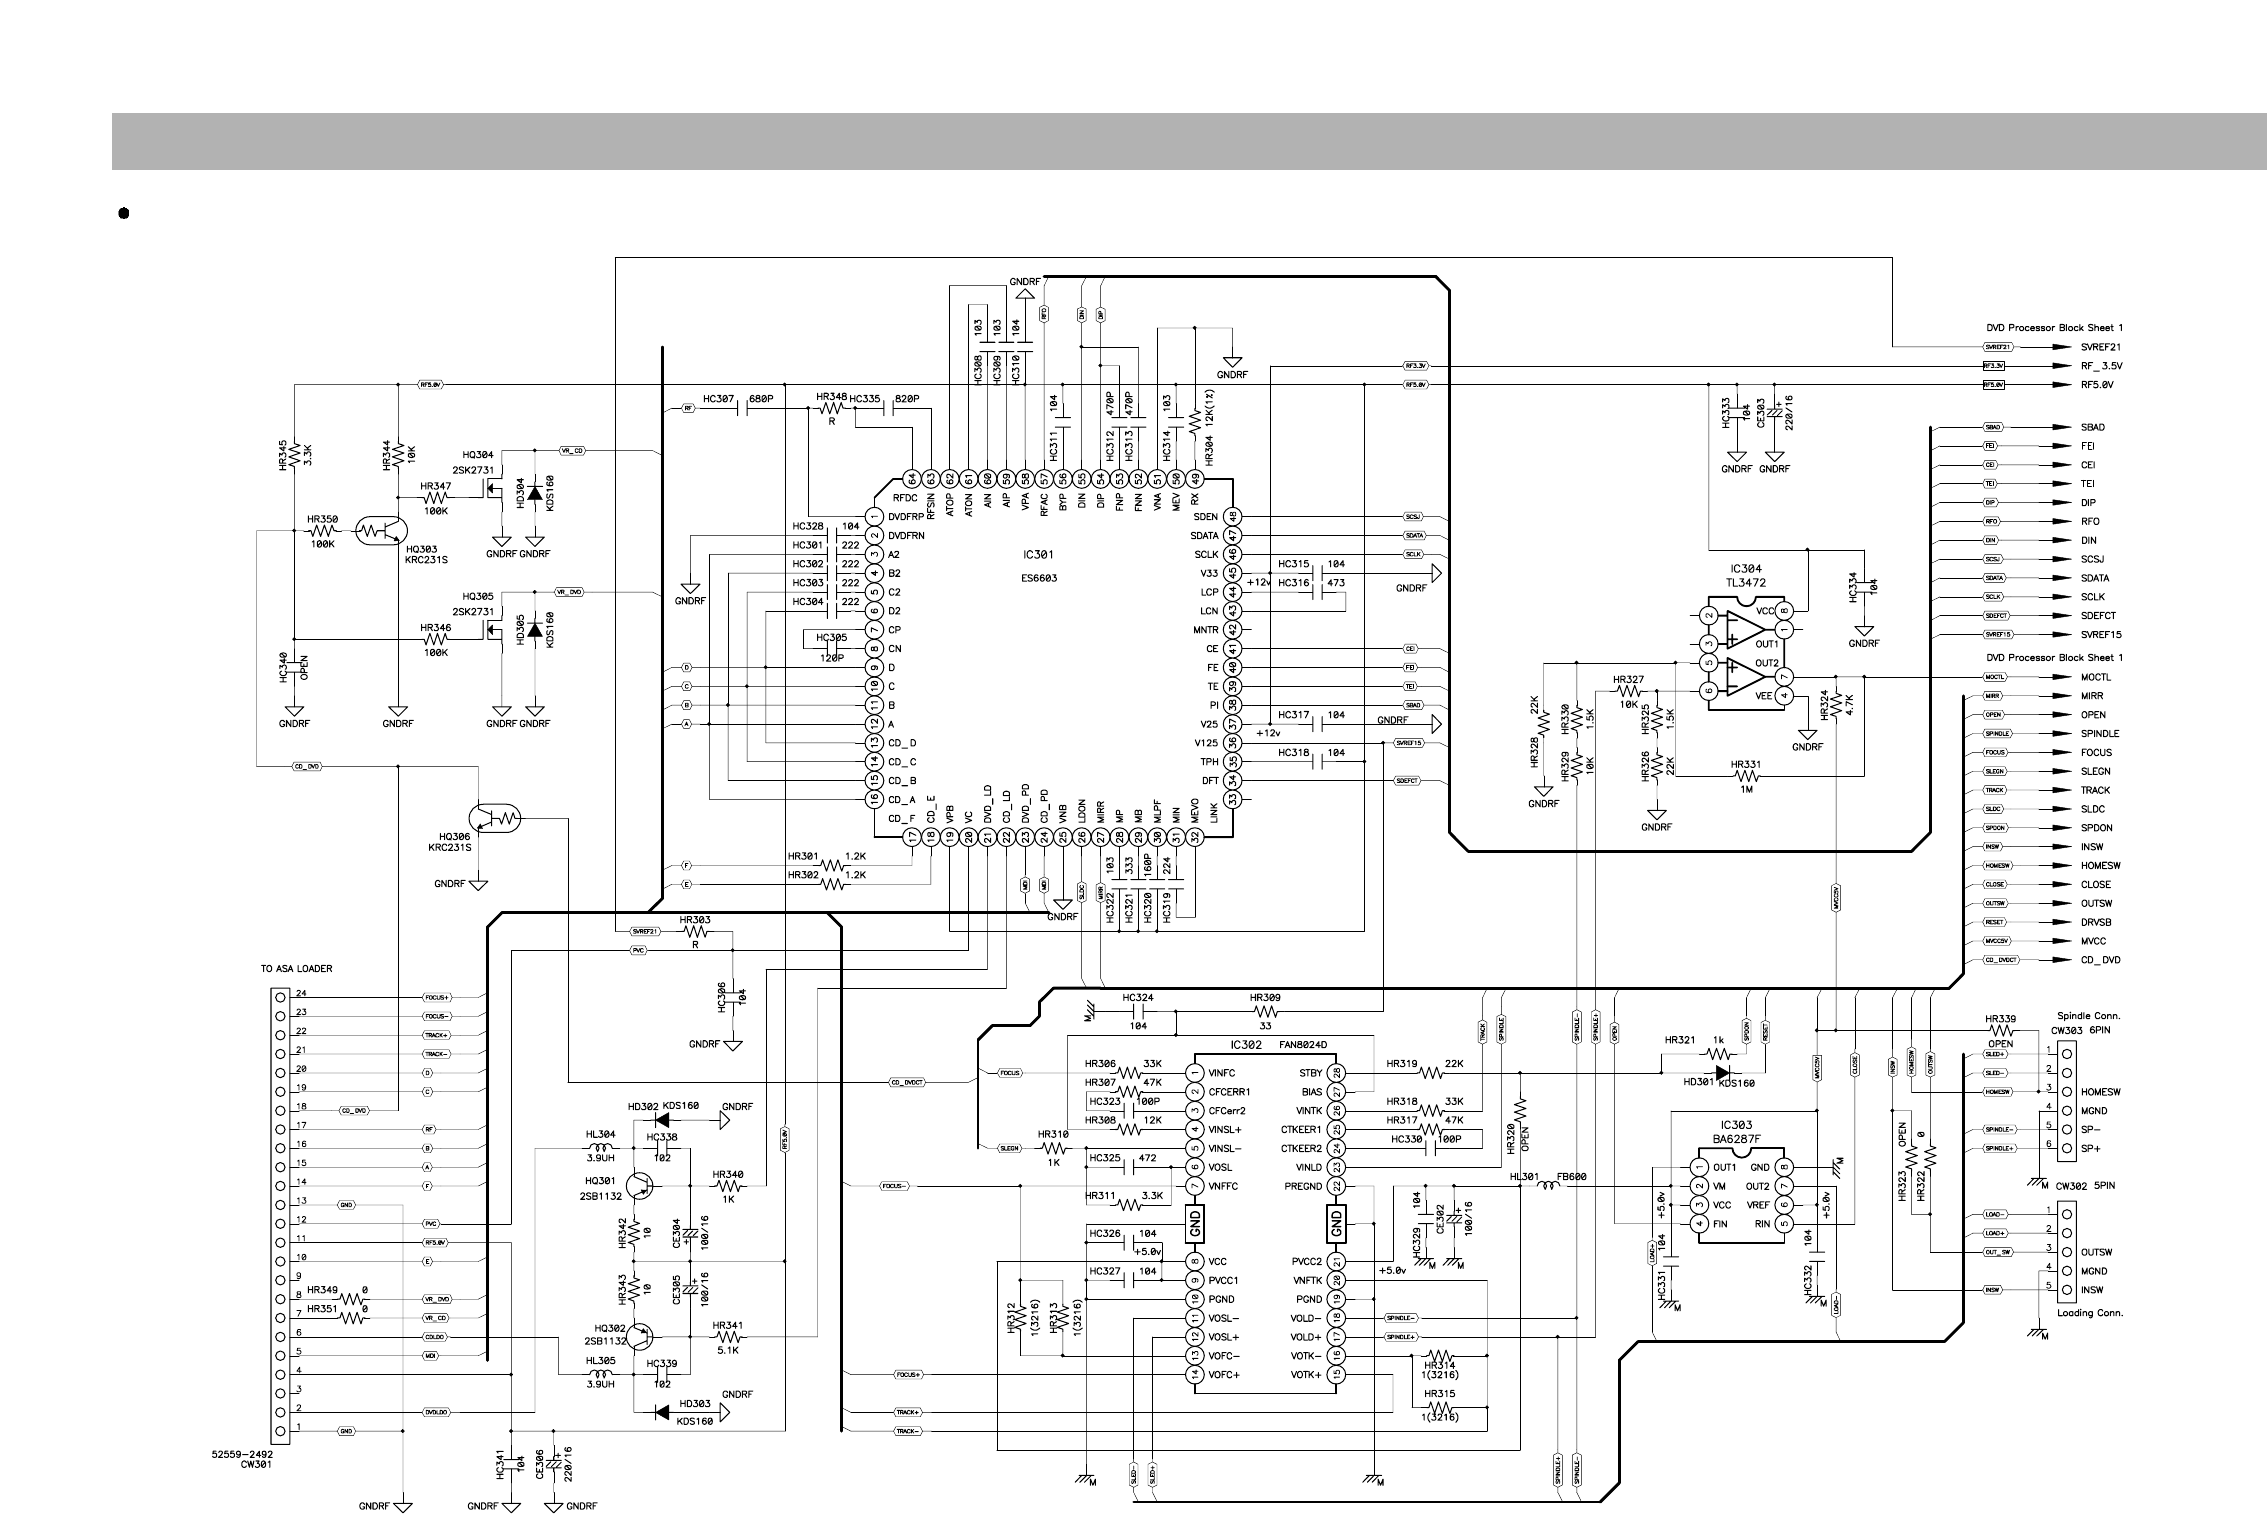 Page 34 of daewoo dvd player rd 400 user guide manualsonline schematic diagram ccuart